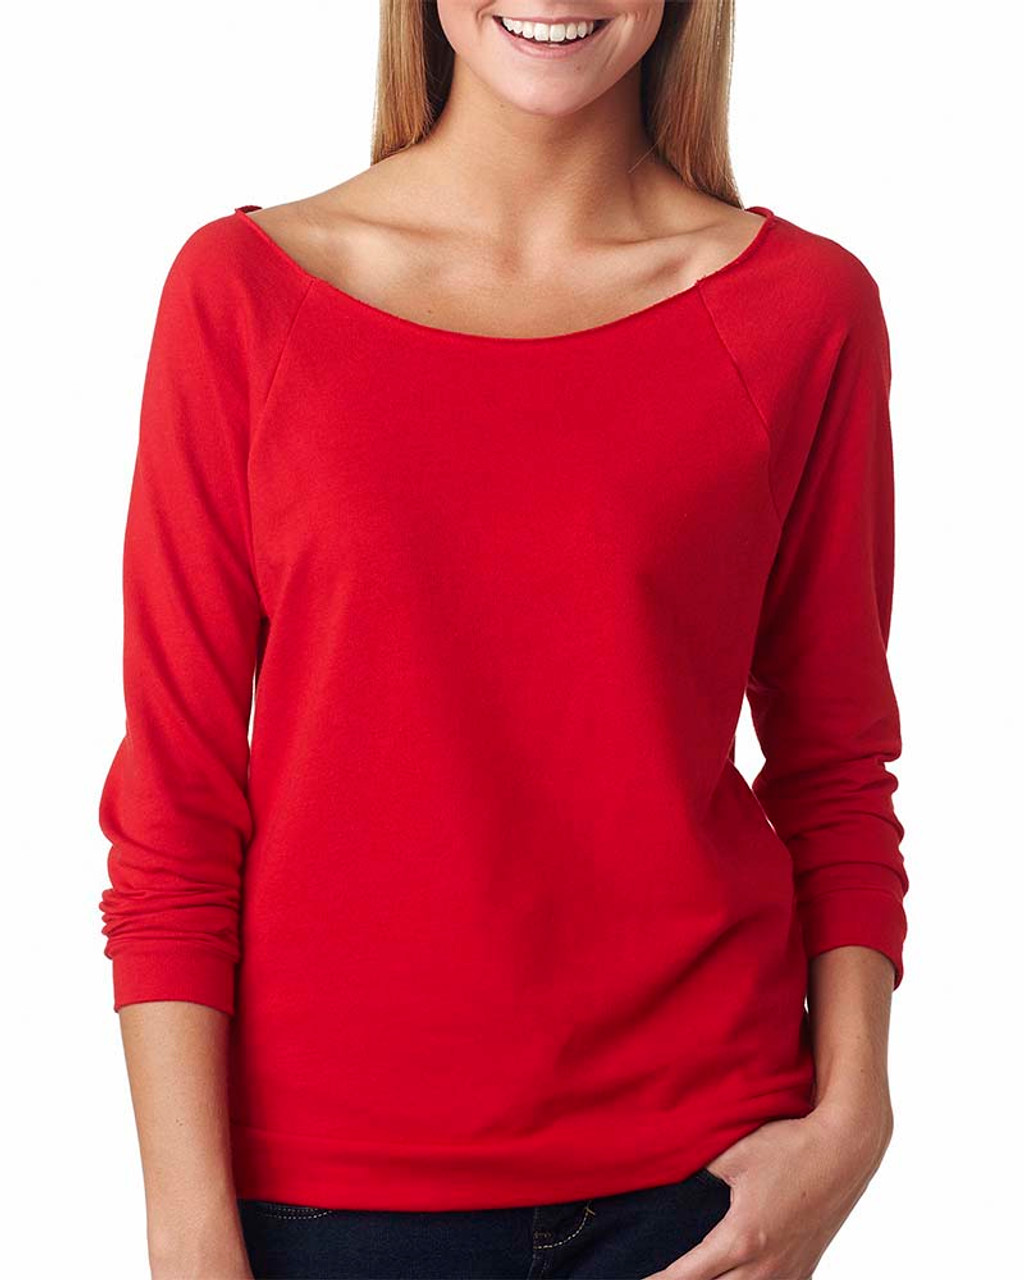 Red - 6951 Next Level Ladies' French Terry Raw-Edge 3/4-Sleeve Raglan Shirt  | BlankClothing.ca